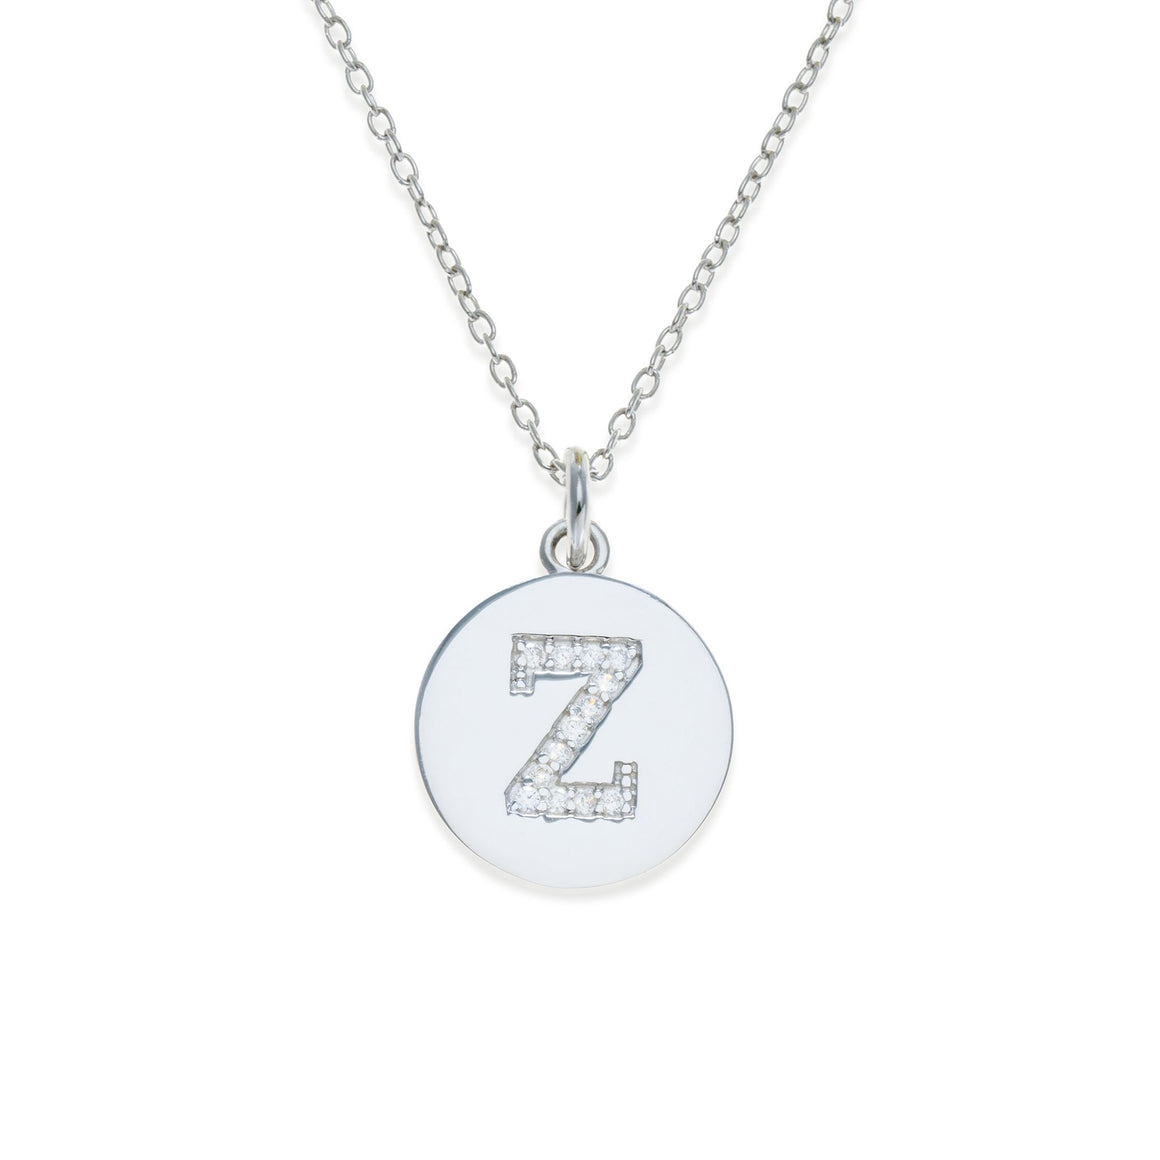 Sterling Silver Initial Necklace - Z | Kith & Kin | It's Personal Collection